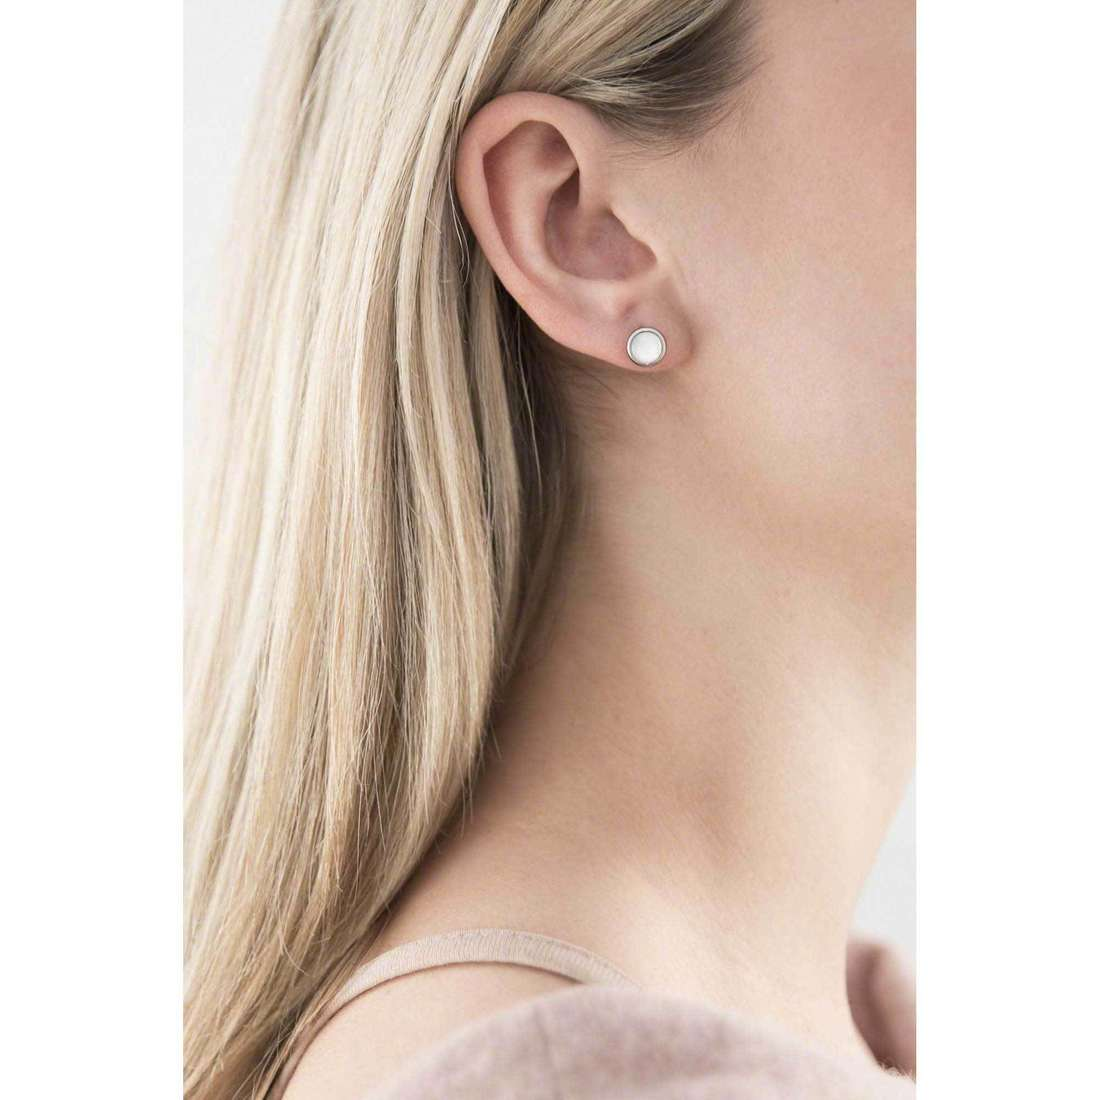 Fossil boucles d'oreille Summer 13 femme JF00705040 indosso